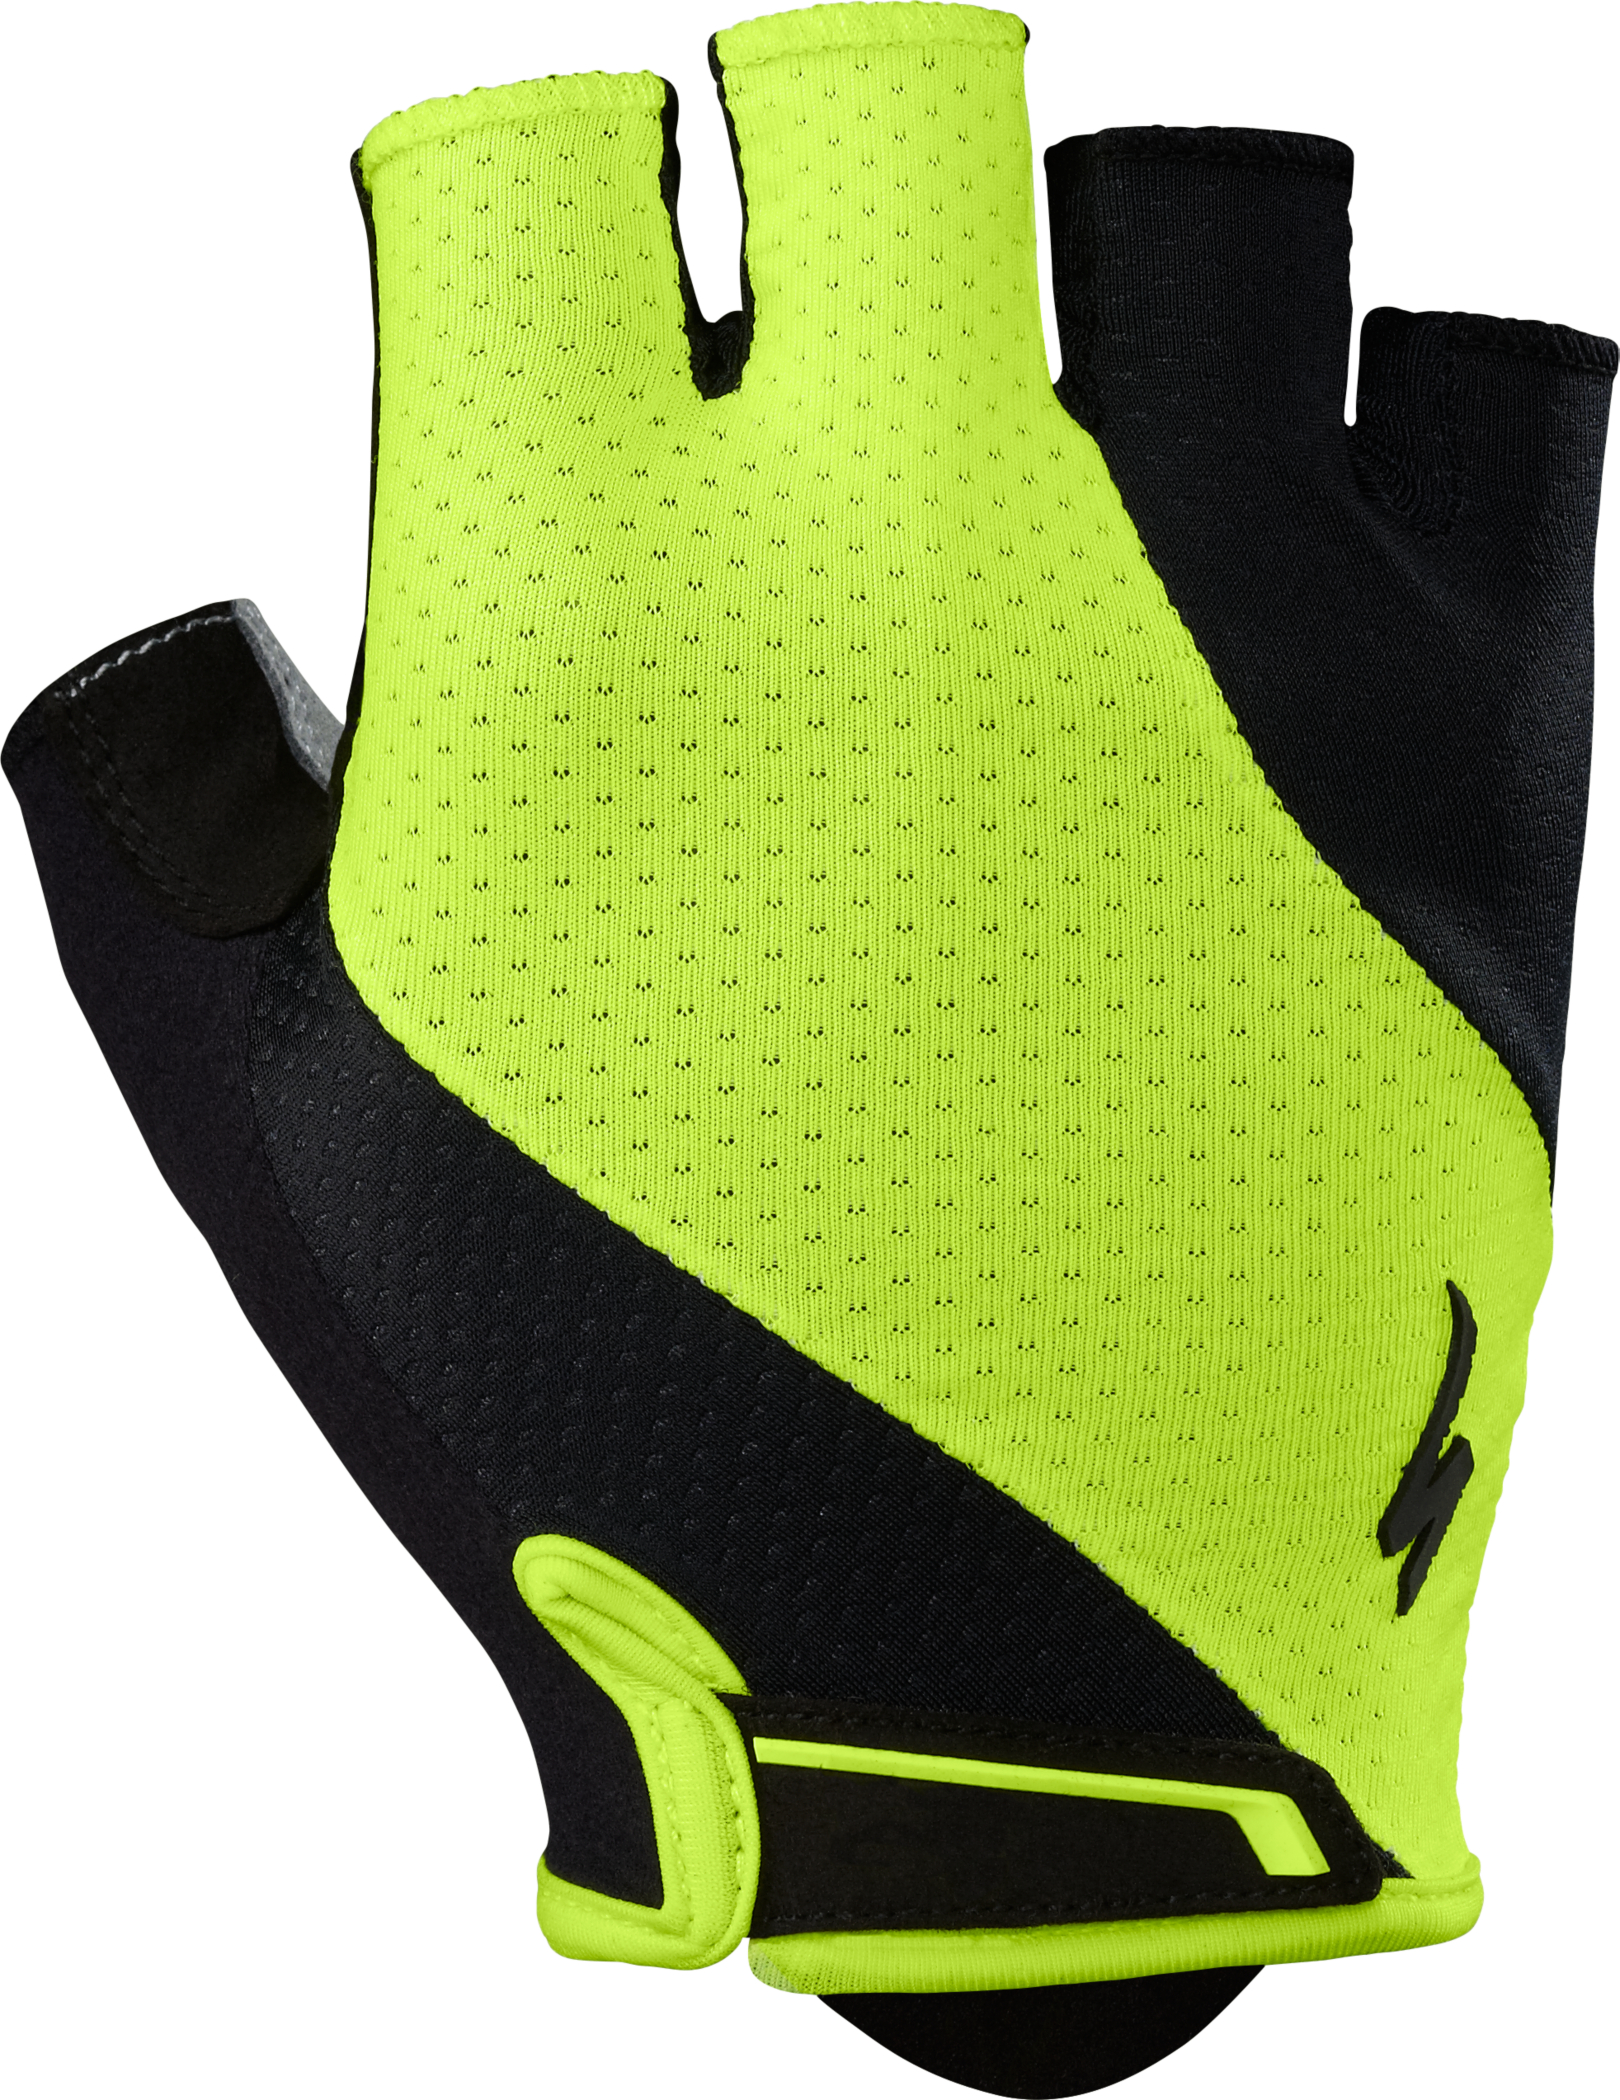 b8660da8a09 Specialized Body Geometry Gel Gloves in Black Neon Yellow £25.00